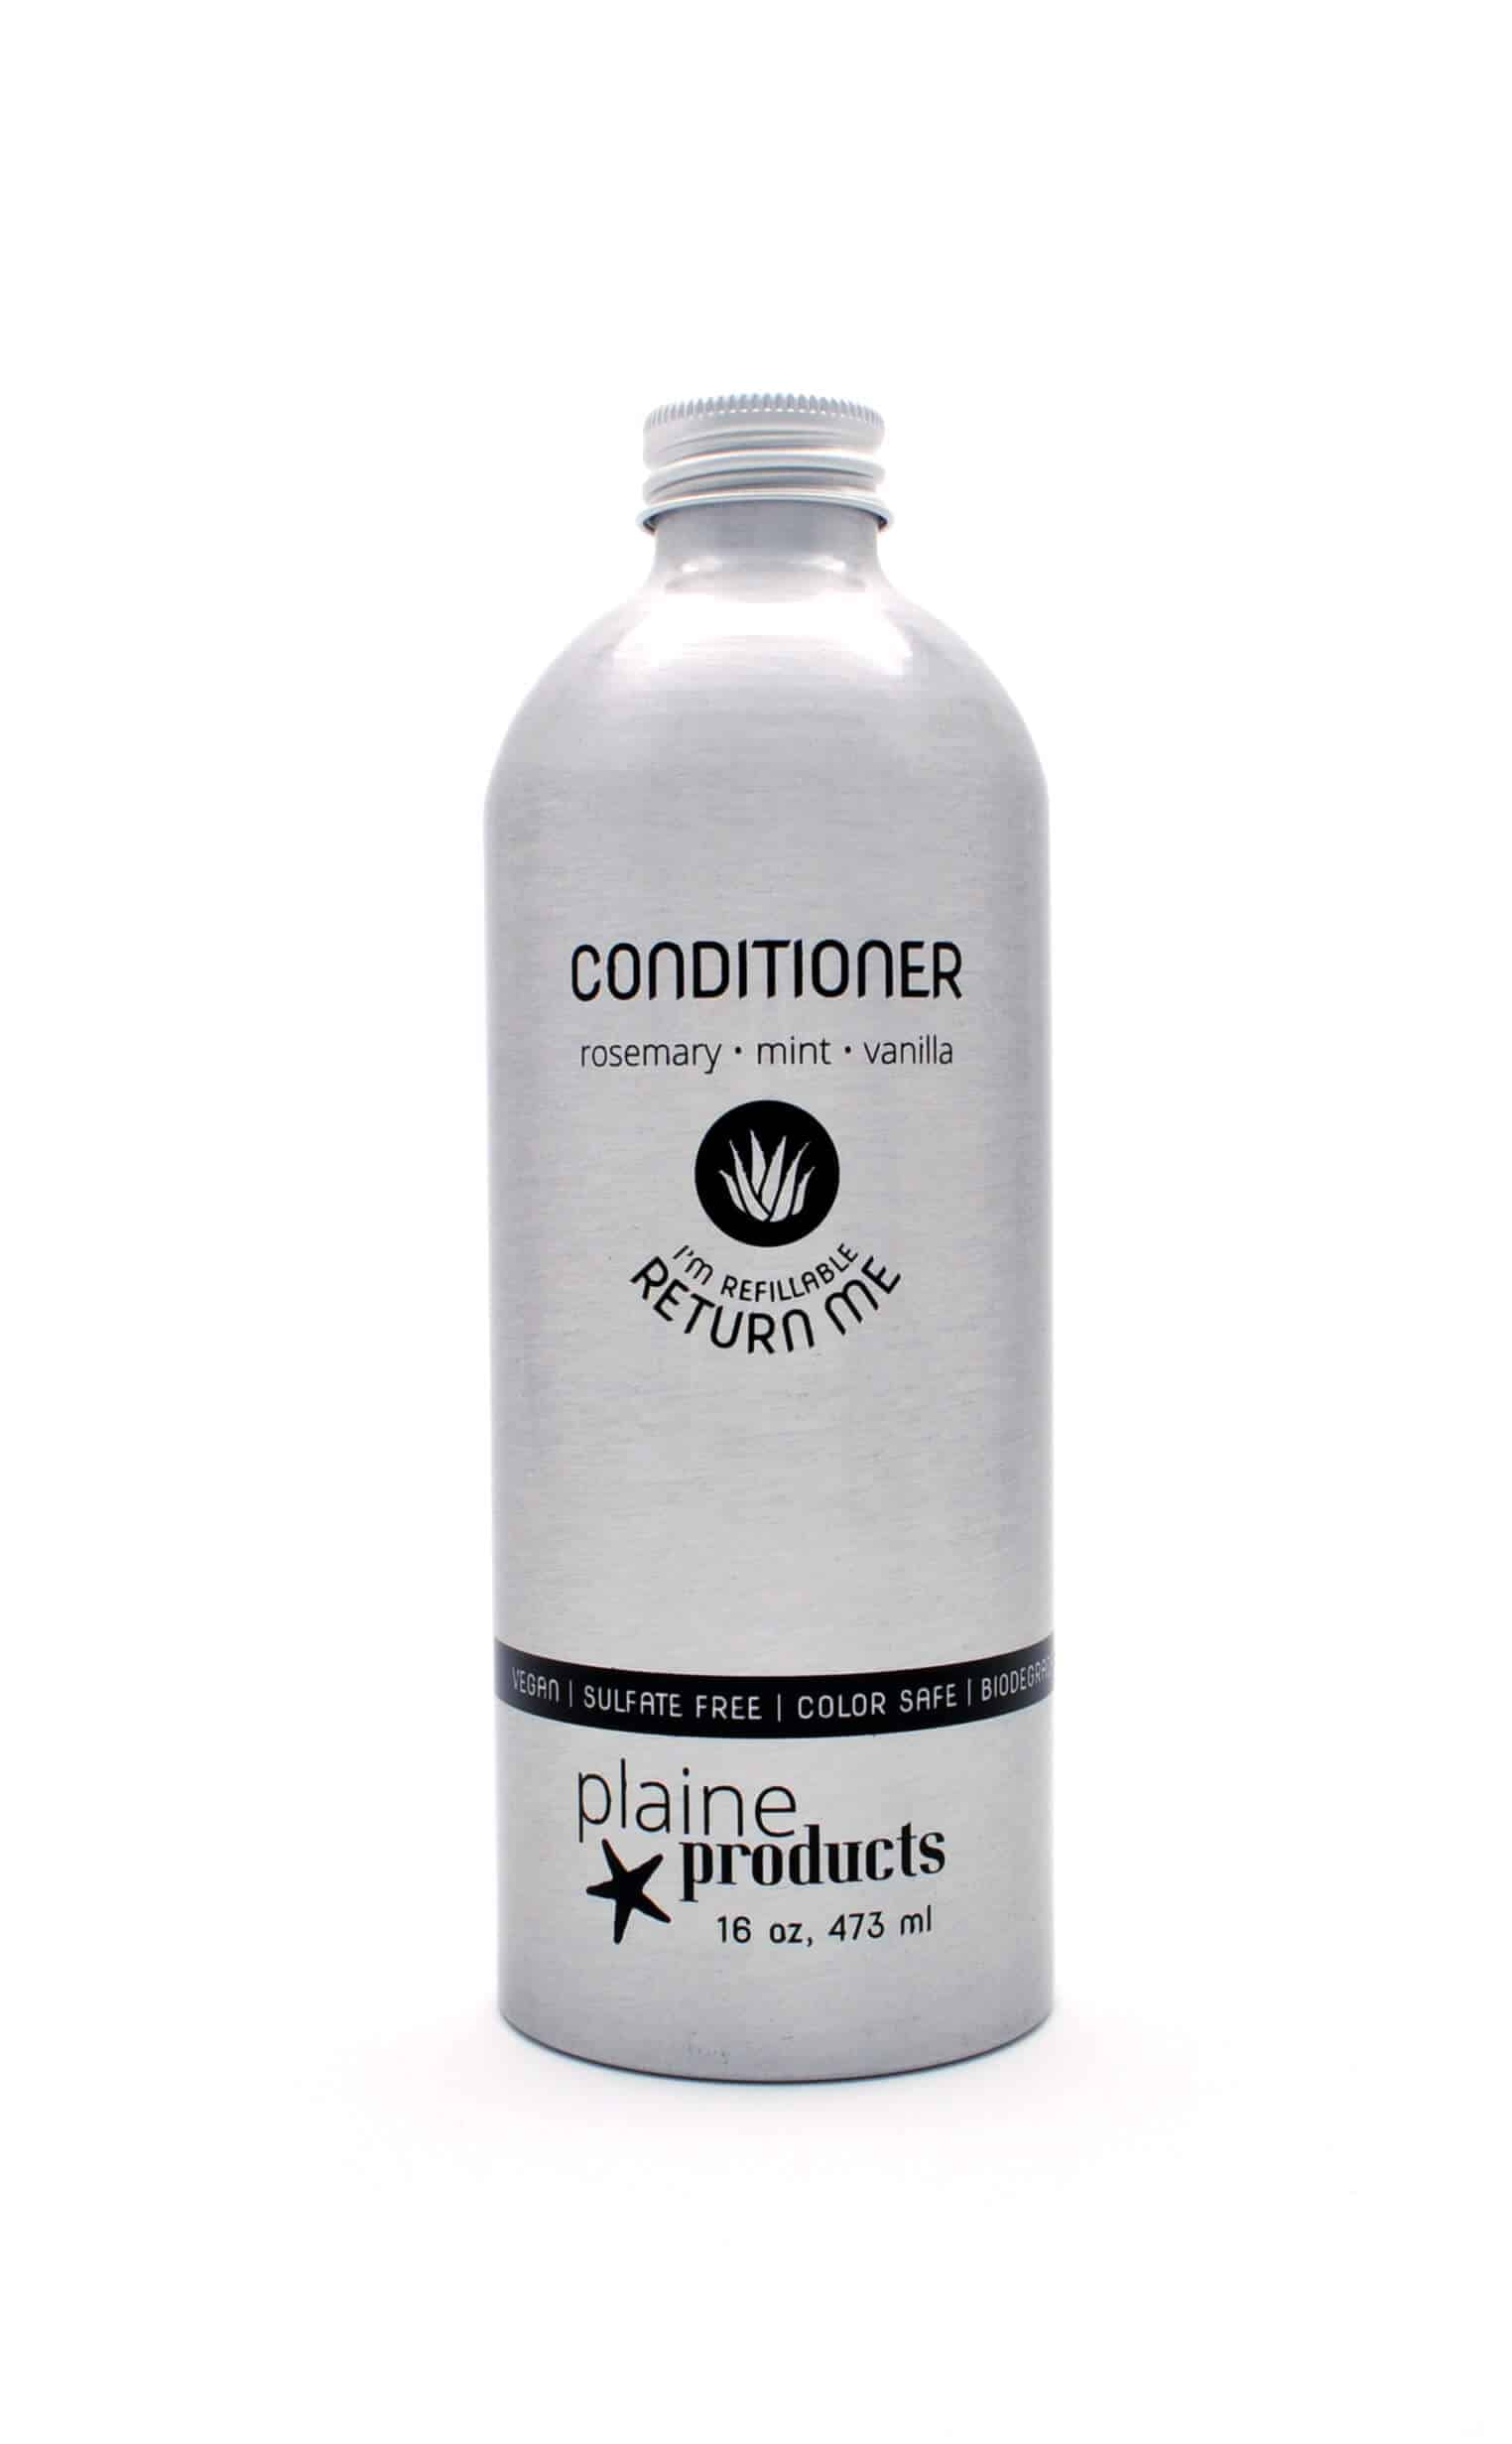 Conditioner.   Shop  Reusable and Refillable container. Make a one-time purchase and return to the shop when a refilled bottle is needed. Subscription program available.  Alternatively, you can  buy conditioner in bulk  and use a shower dispenser at home for daily use OR use a  conditioner bar.